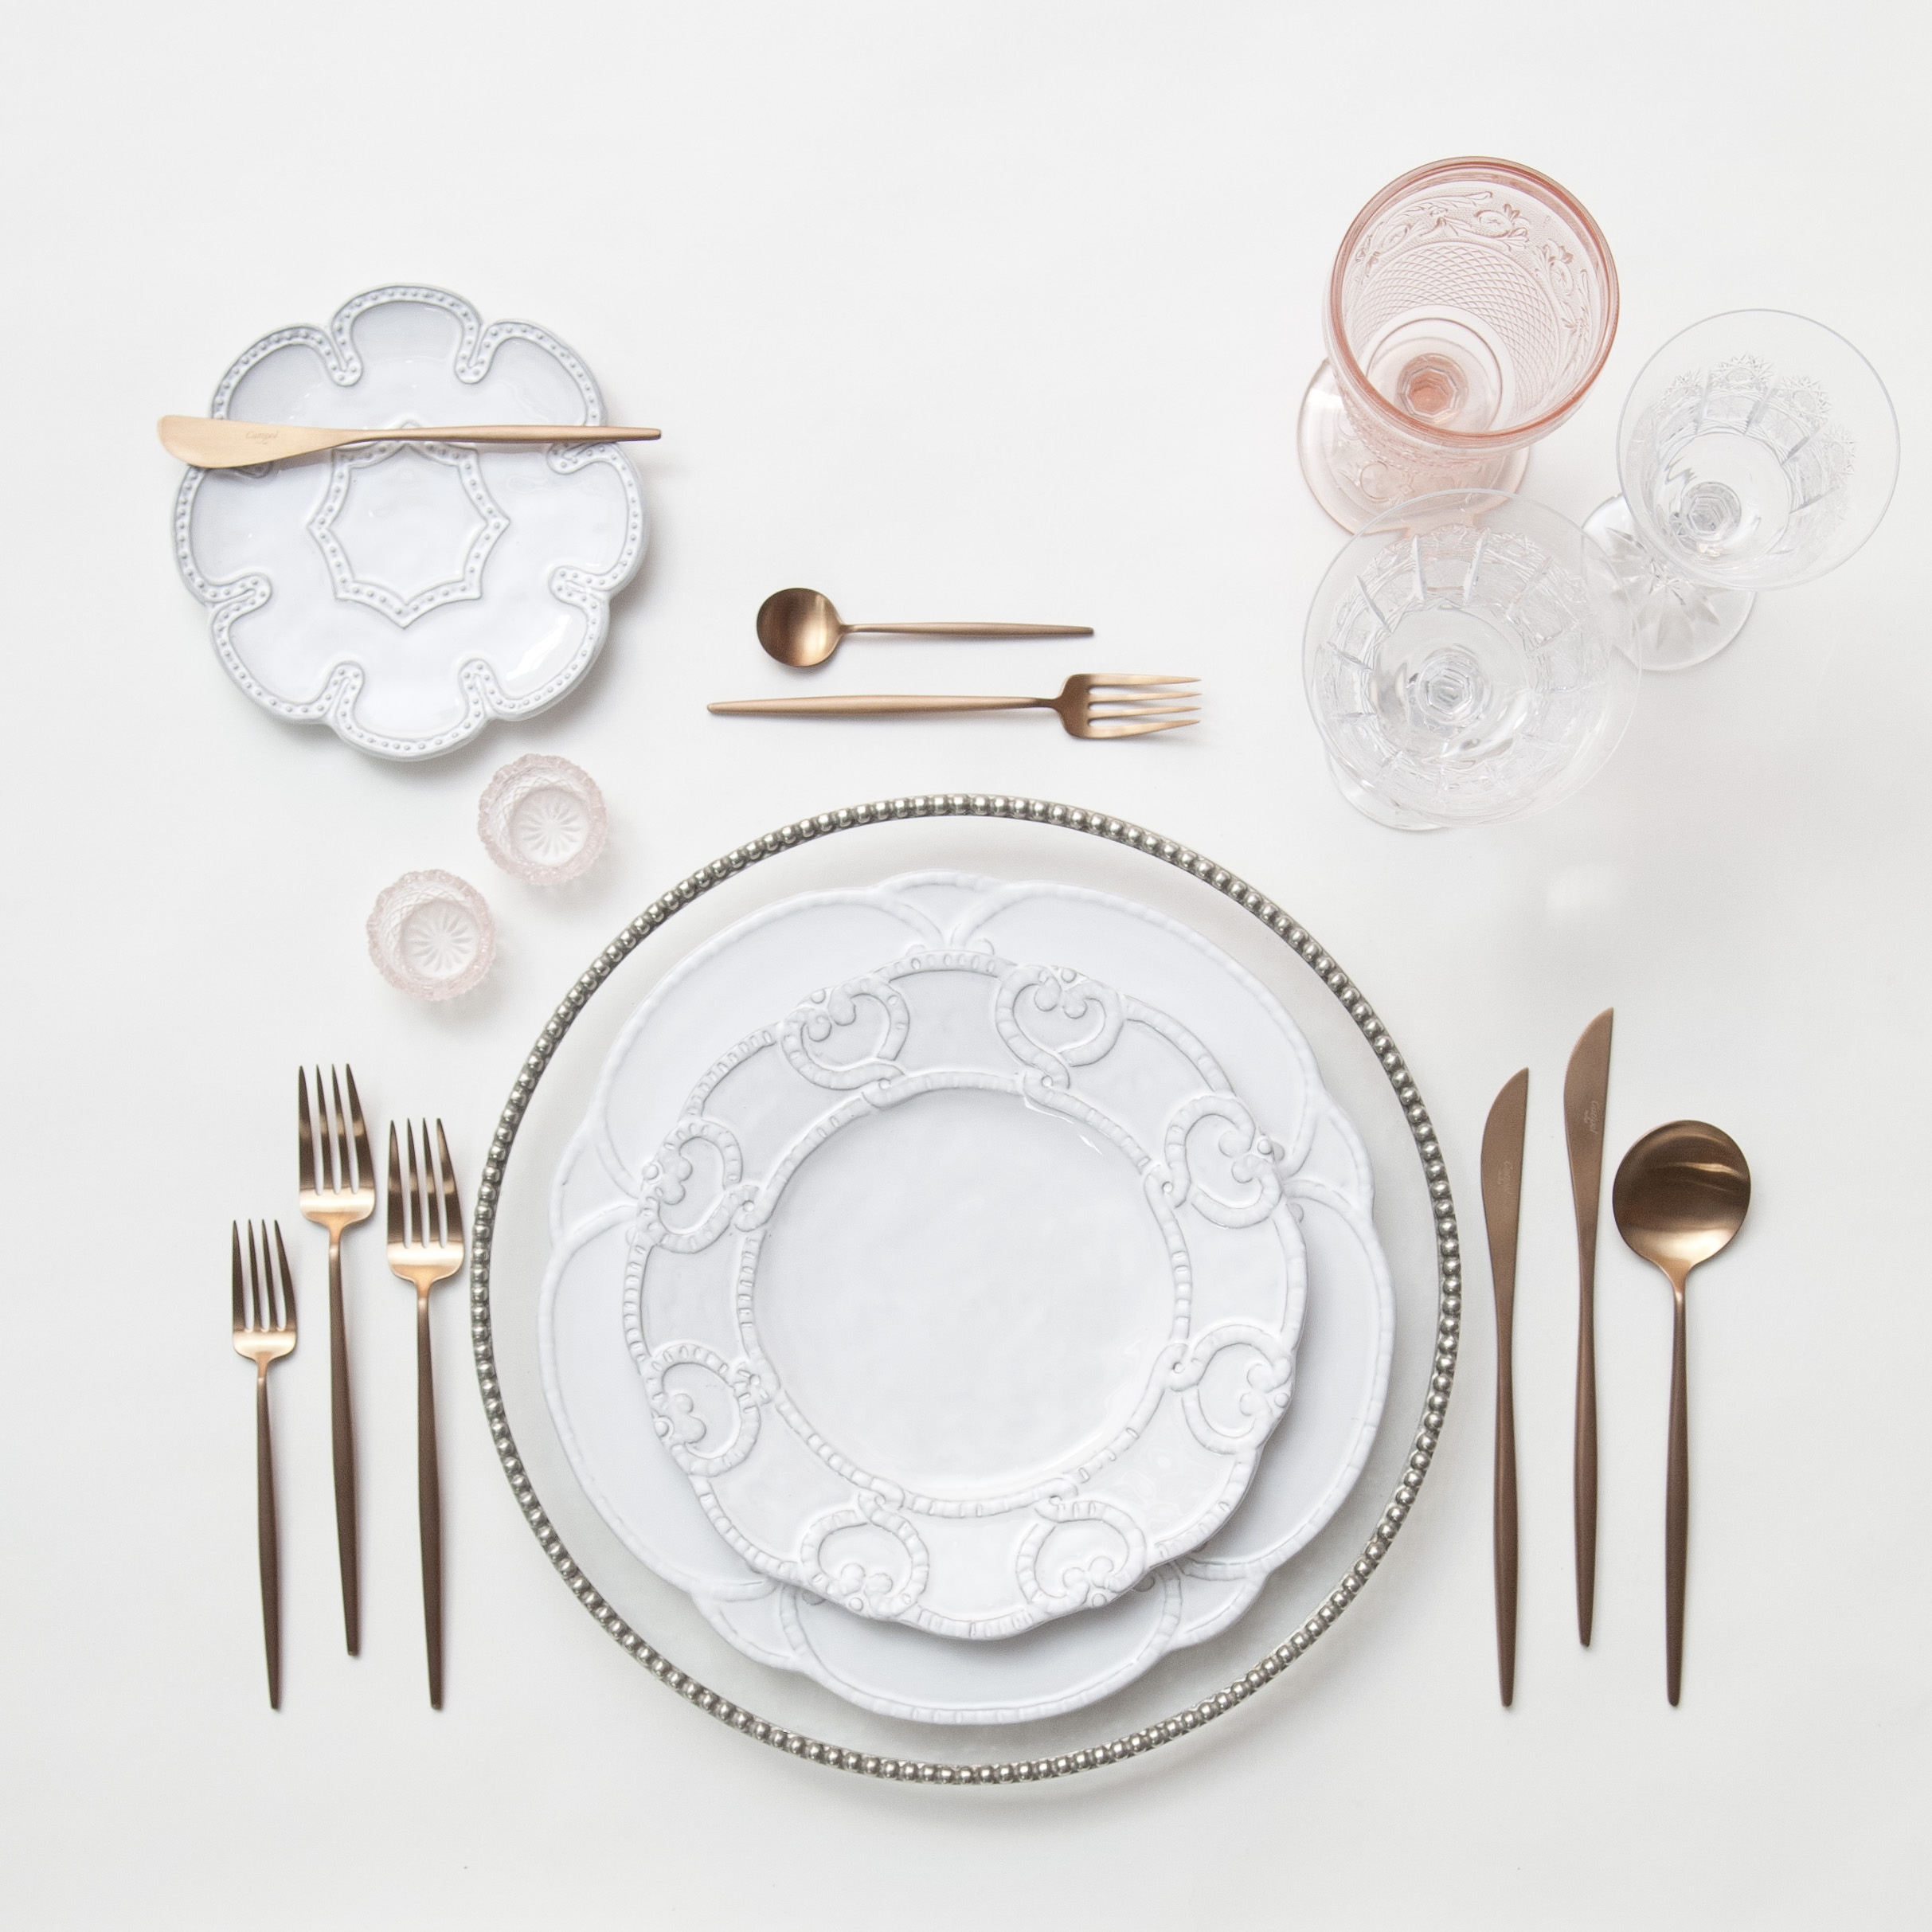 RENT: Pavé Glass Chargers in Pewter + Signature Collection Dinnerware + Moon Flatware in Brushed Rose Gold + Vintage Pink Goblets + Czech Crystal Stemware + Pink Crystal Salt Cellars  SHOP: Moon Flatware in Brushed Rose Gold